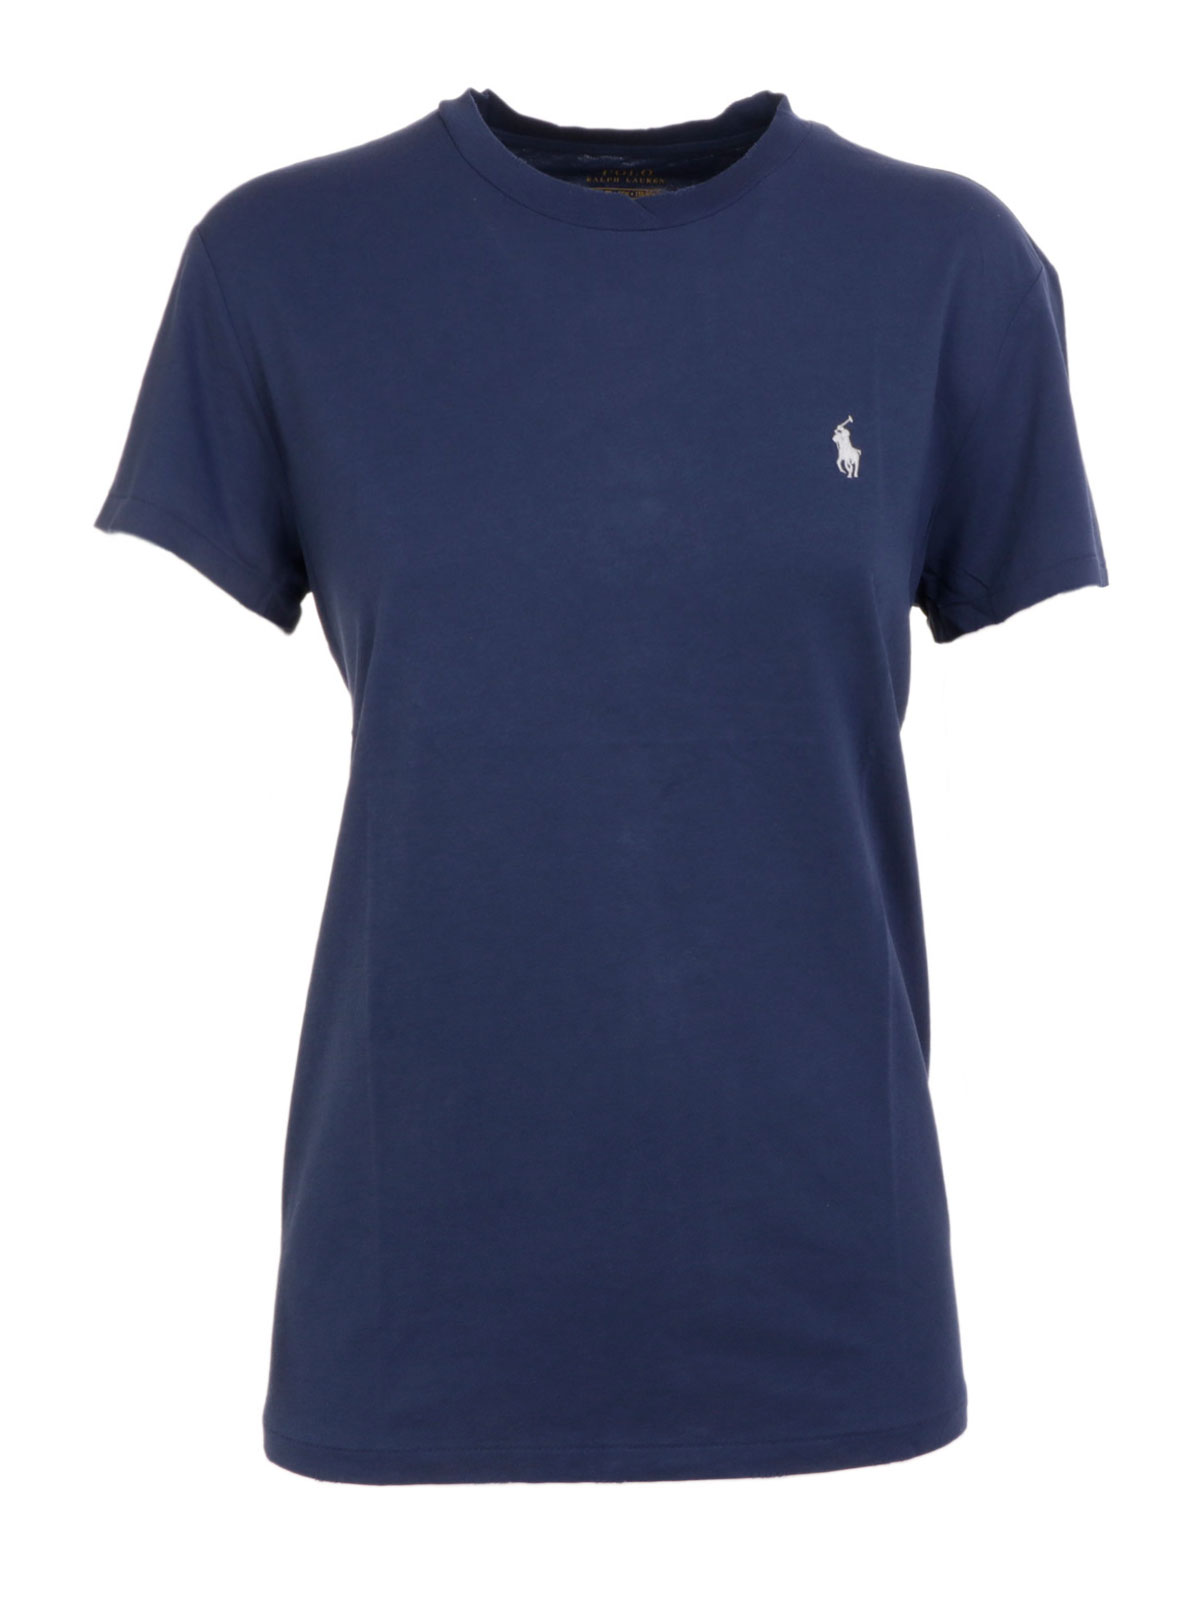 Picture of POLO RALPH LAUREN | Women's Solid T-Shirt